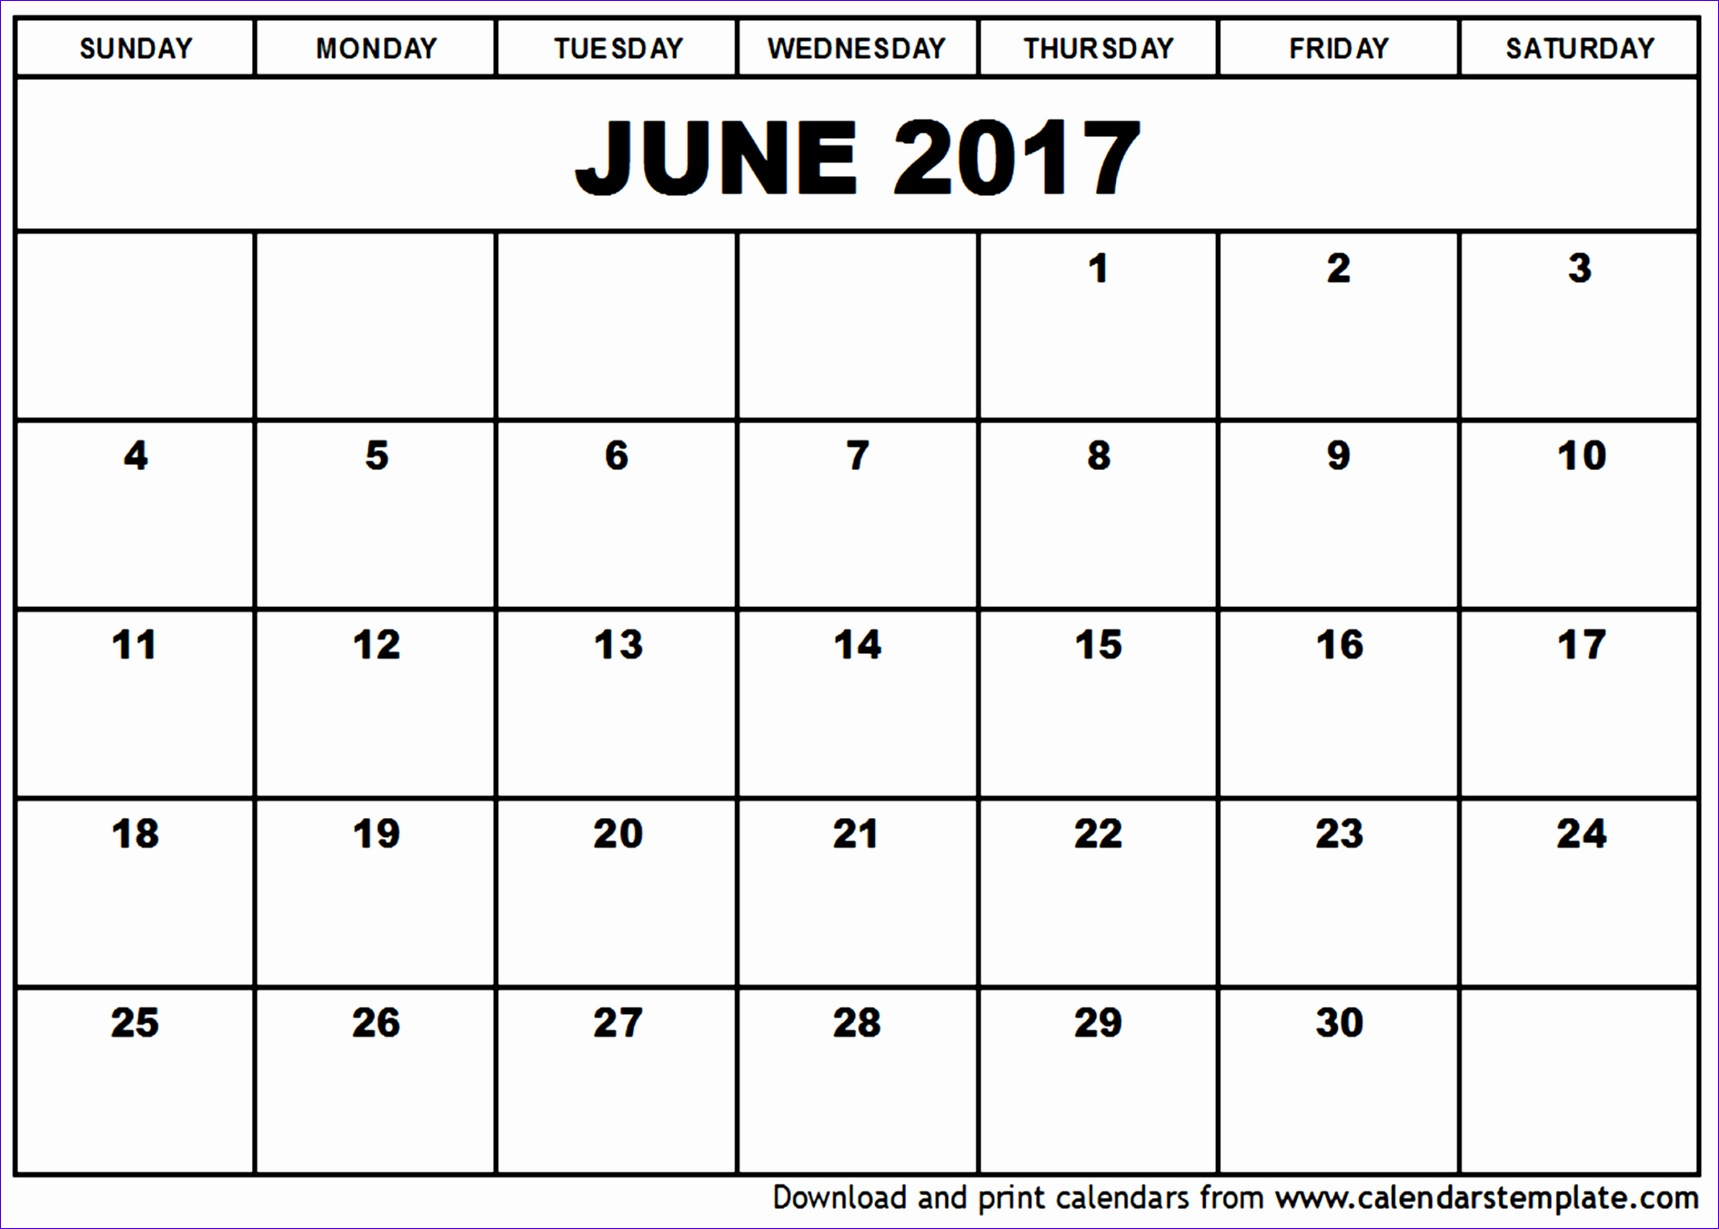 june 2017 printable calendar free pdf word excel templates example 17191229